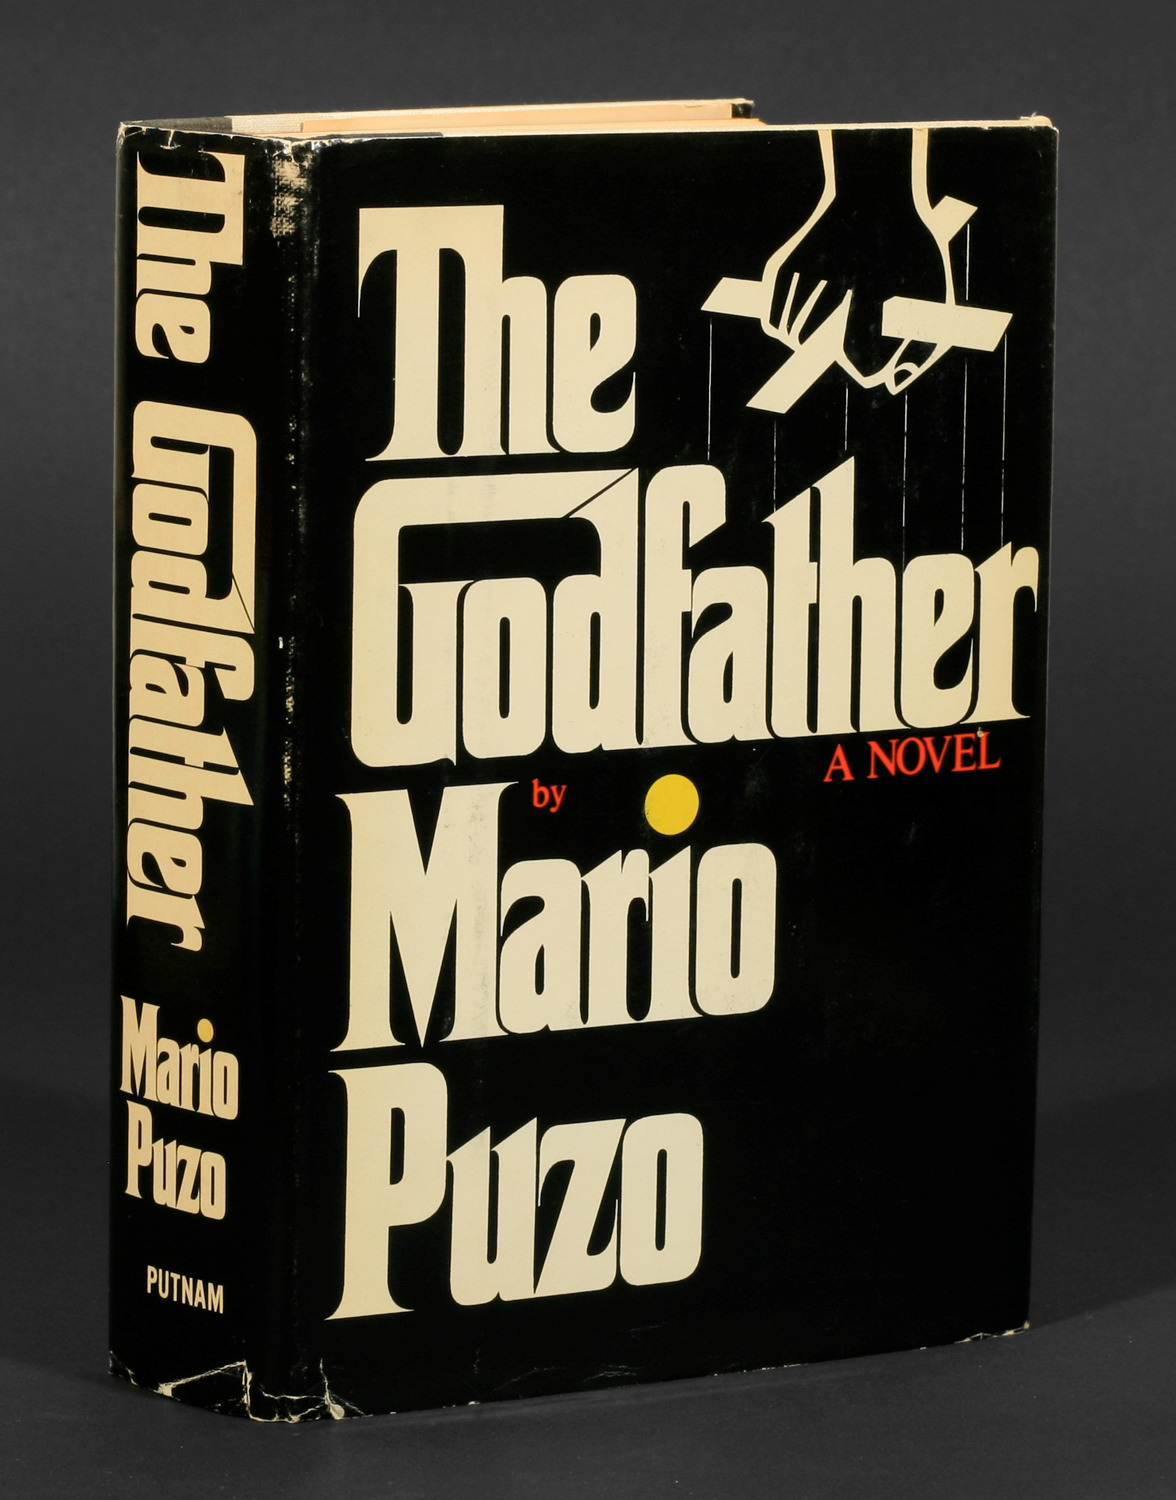 book talk on the godfather by mario puzo Mario puzo's classic saga of an american crime family that became a global   passion and loyalty continues to stand the test of time, as the definitive novel of  the mafia underworld  what people are saying - write a review.